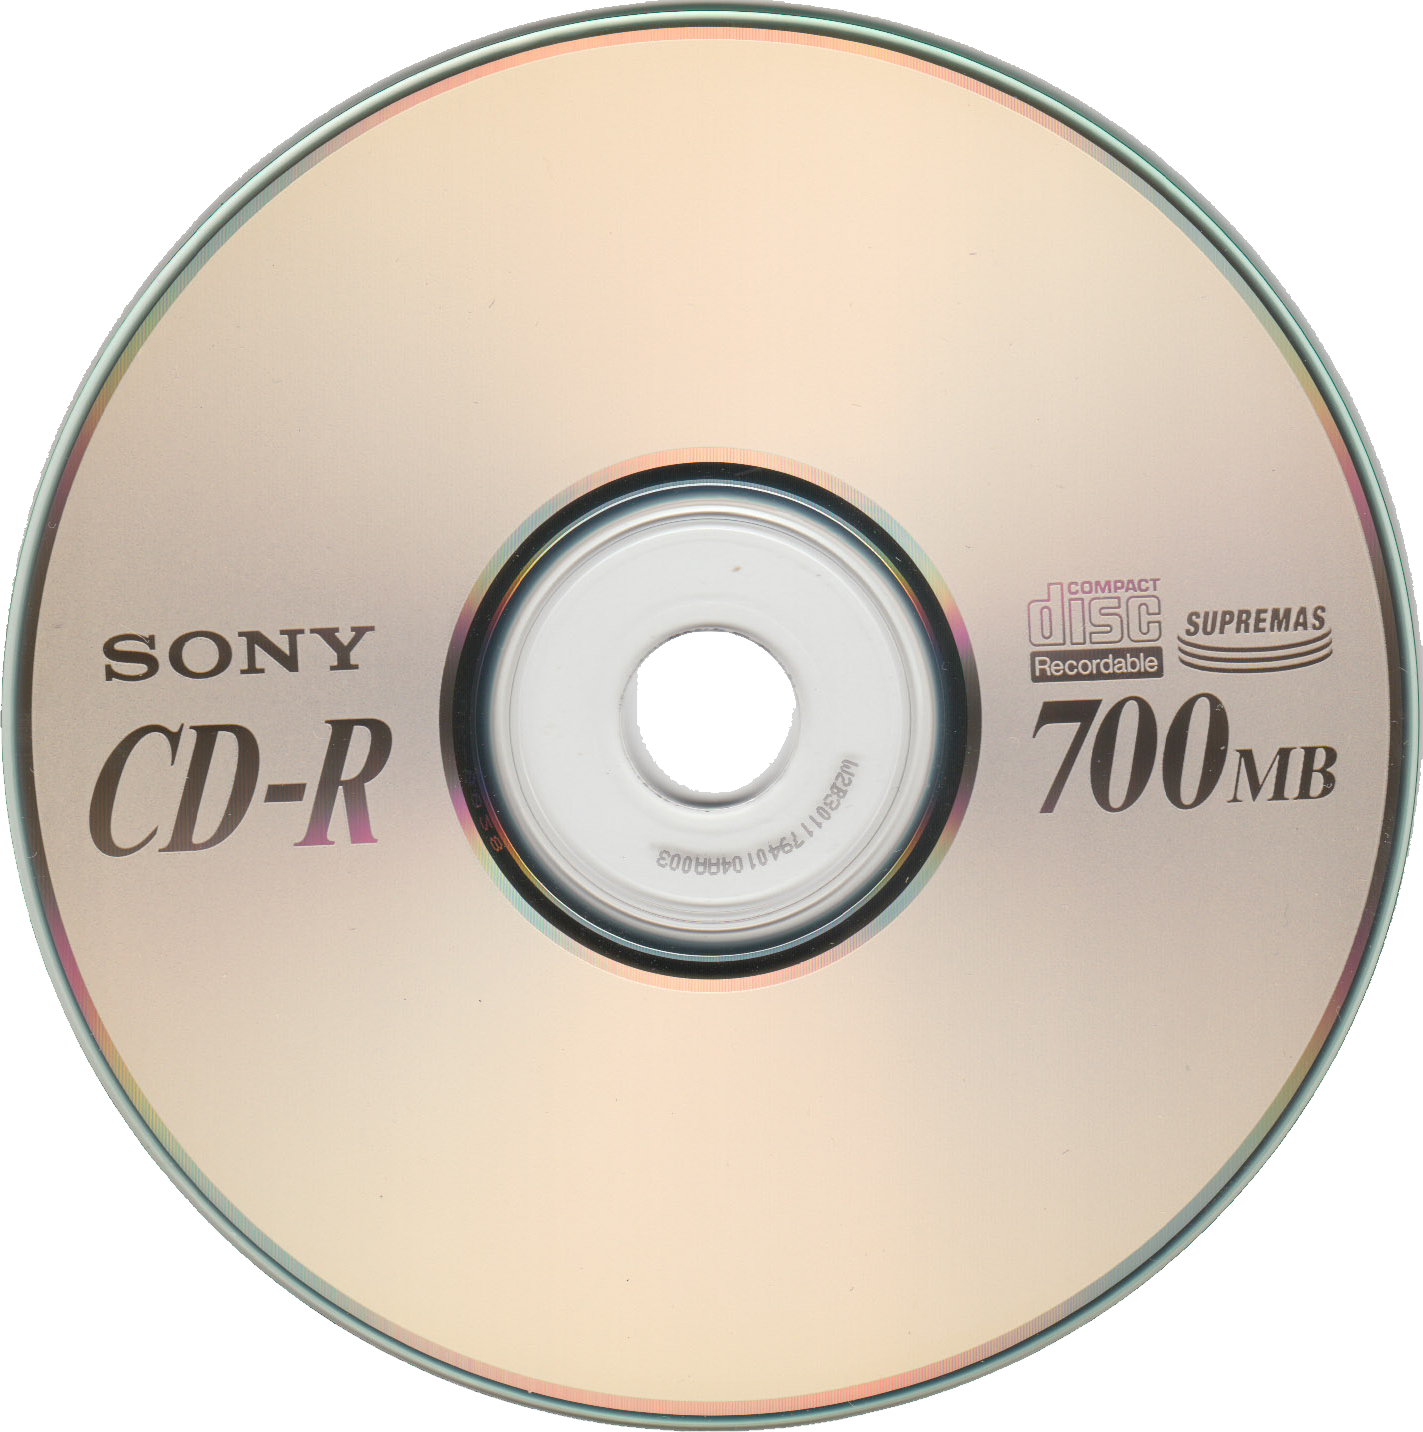 Compact disk PNG images Download